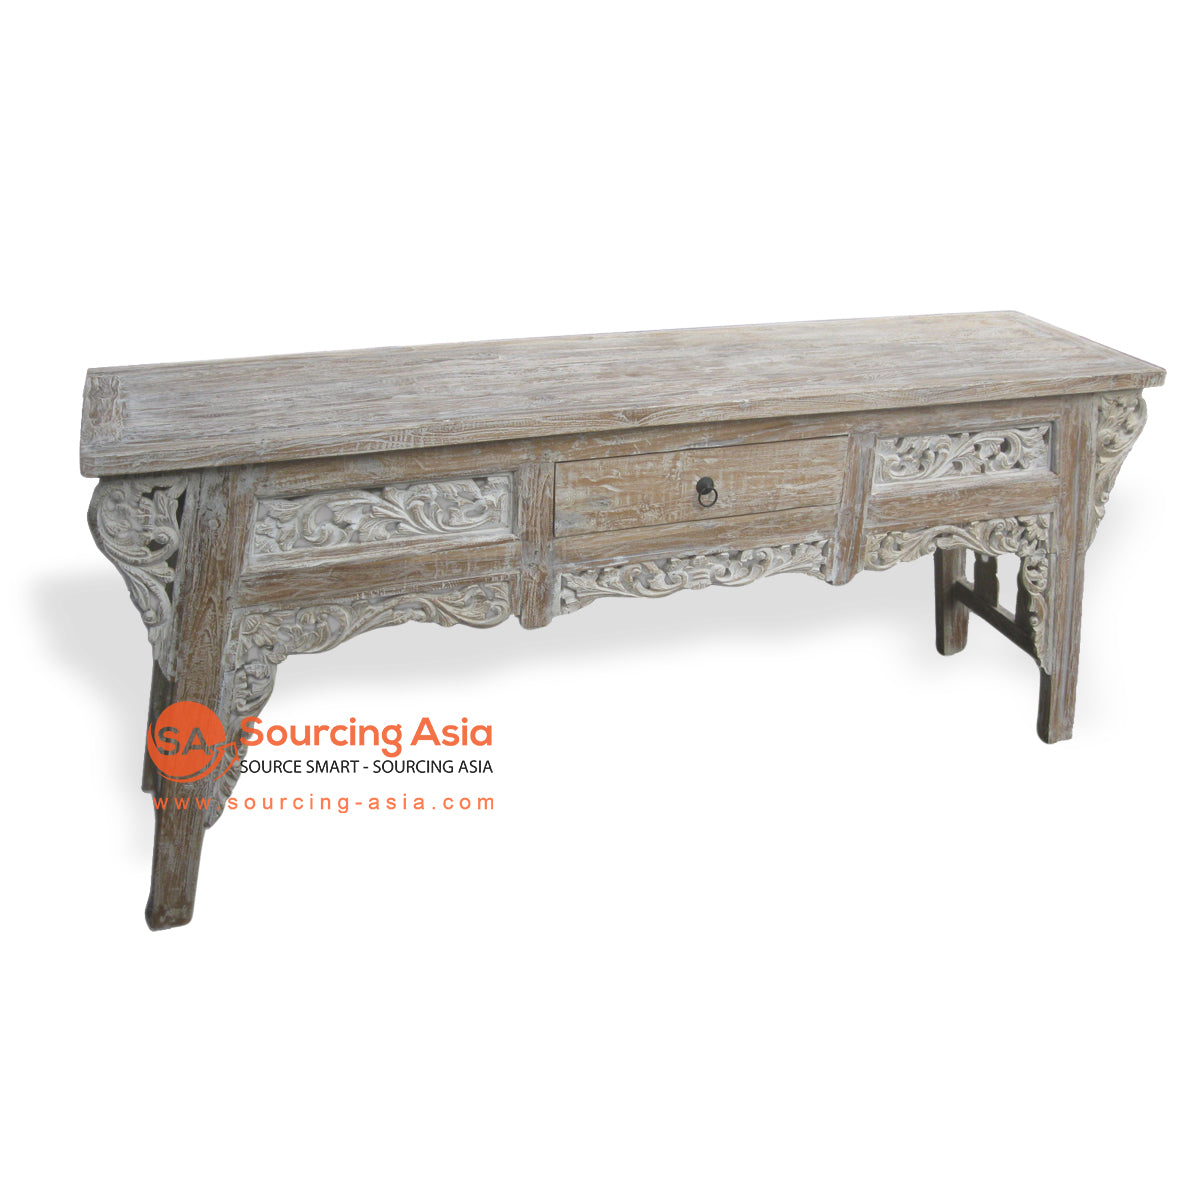 LAC022 CARVED CONSOLE